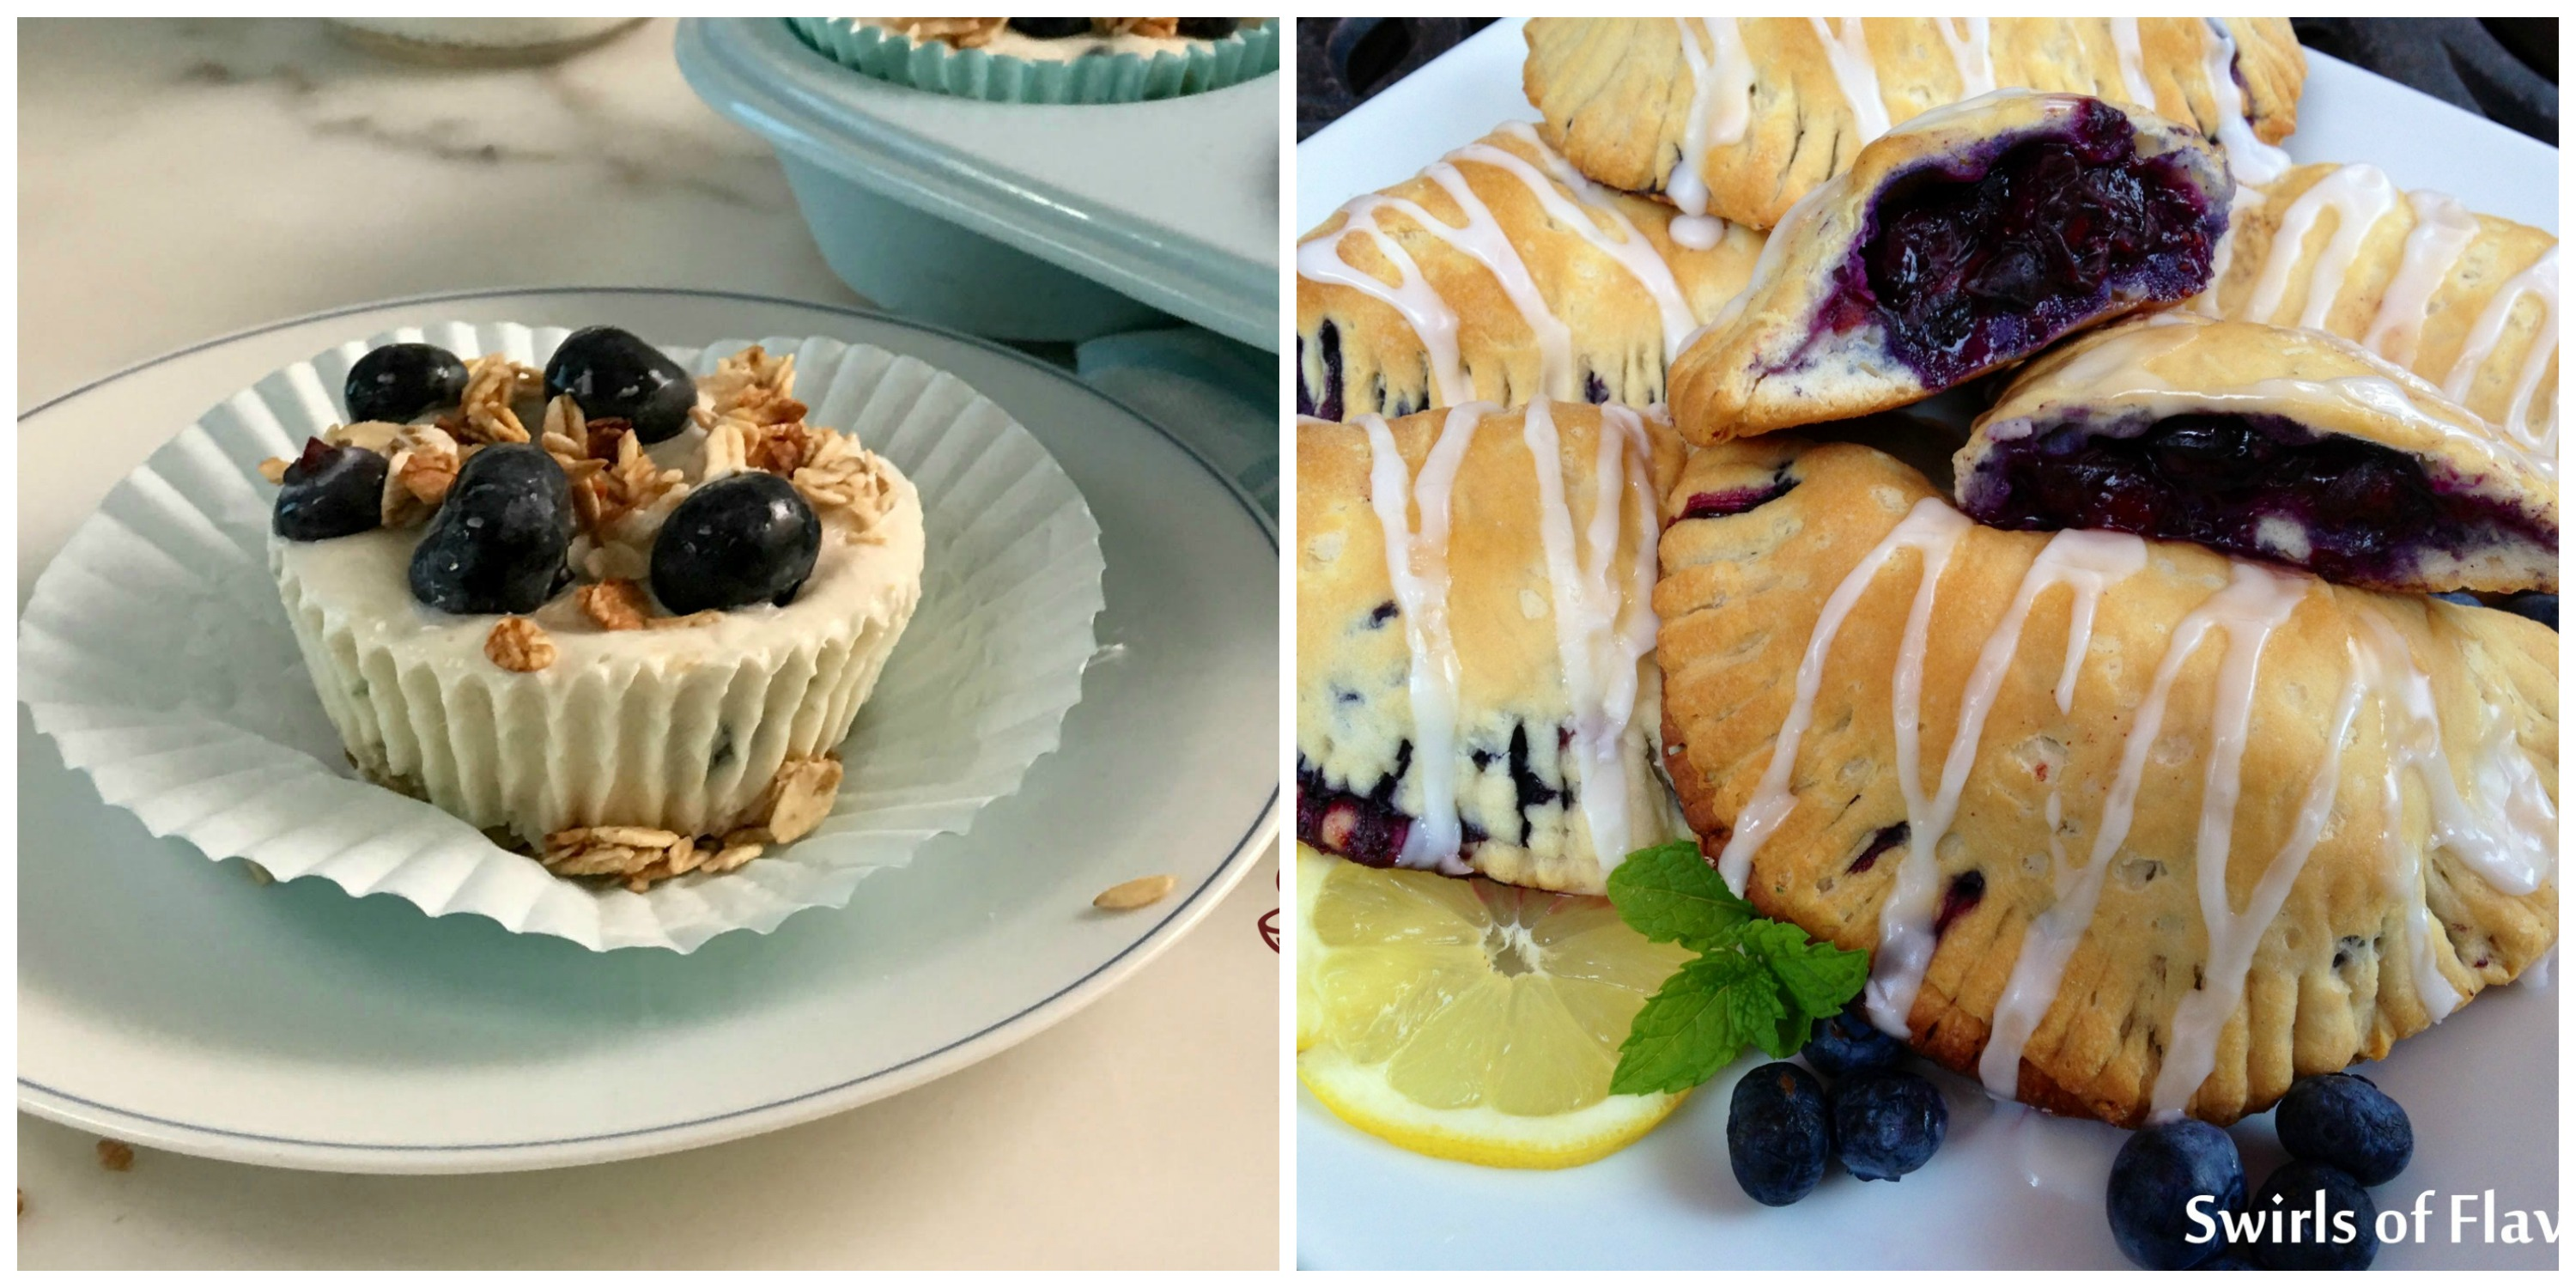 Blueberry Yogurt Cups and Blueberry Hand Pies